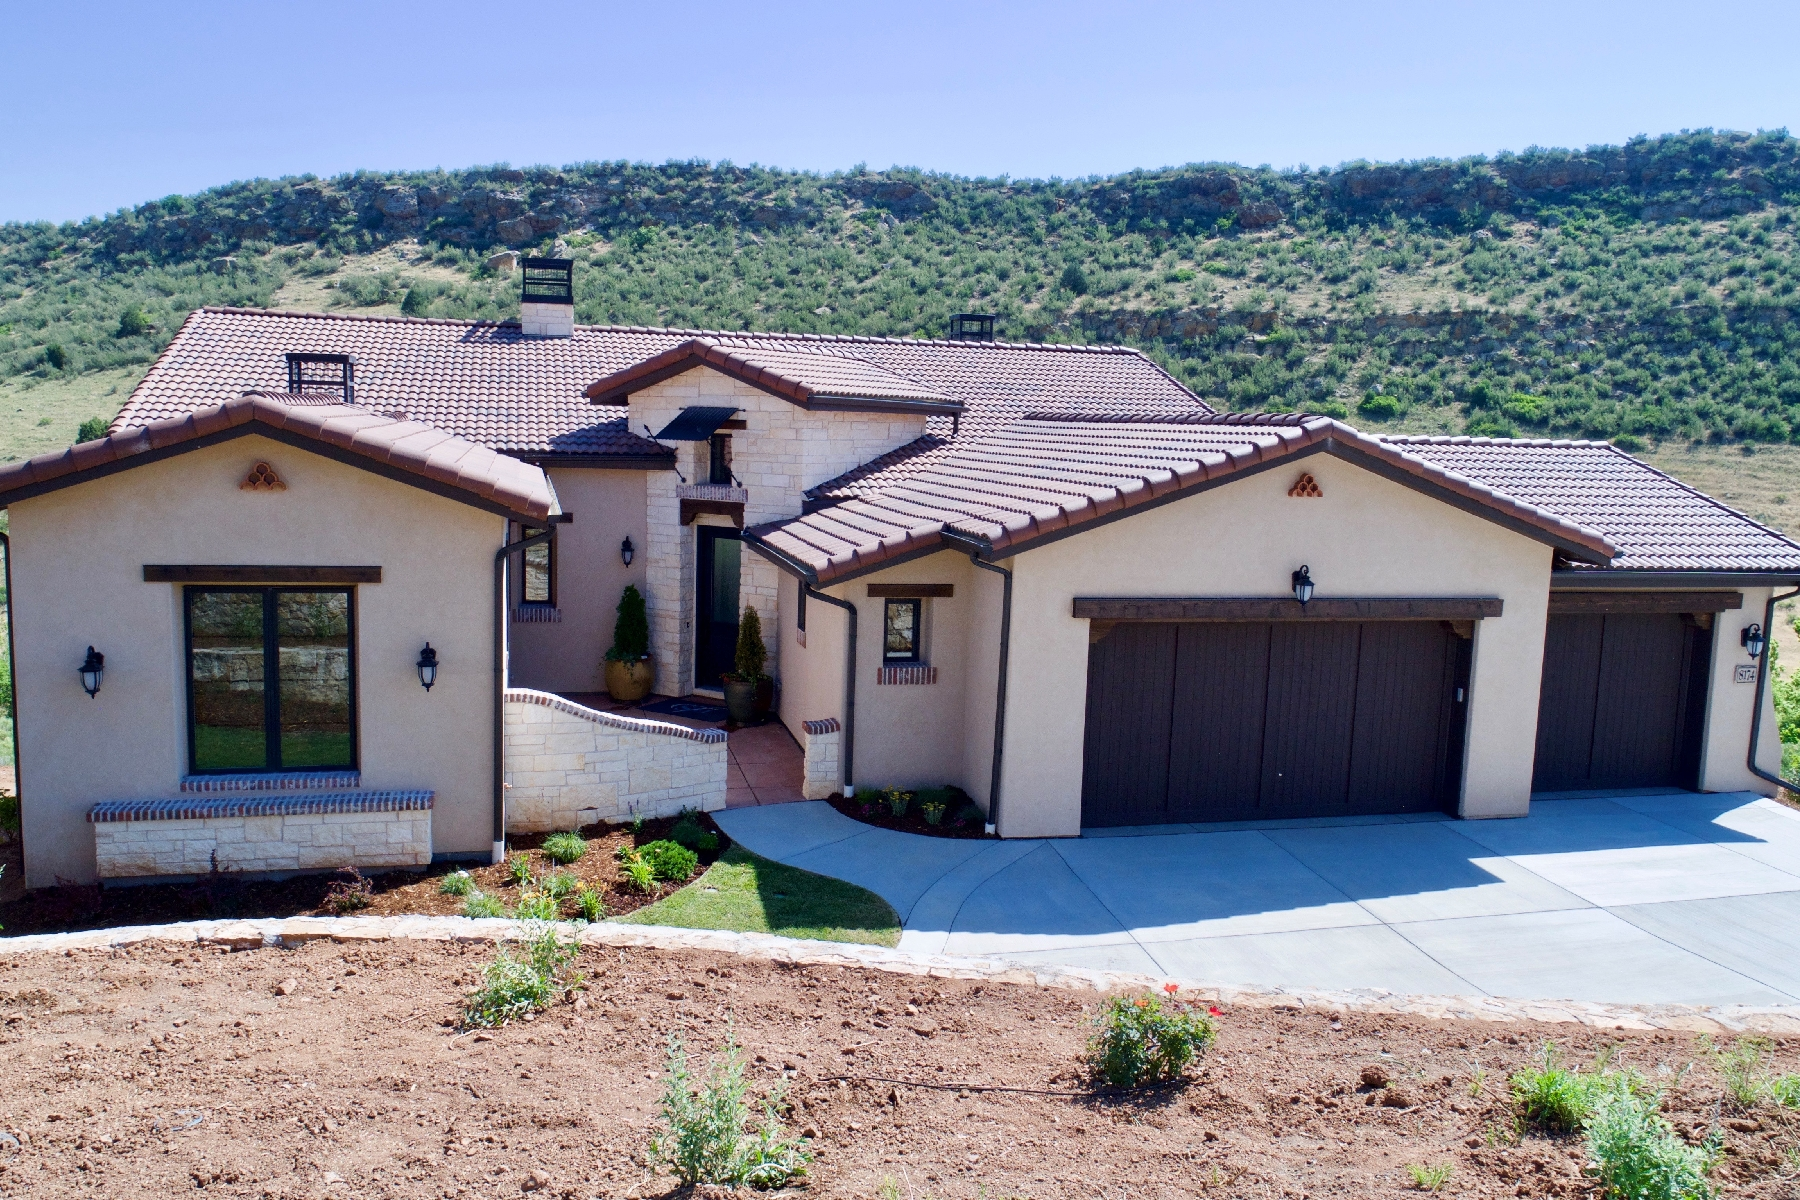 Single Family Home for Active at 8174 Donatello Ct 8174 Donatello Ct Littleton, Colorado 80125 United States